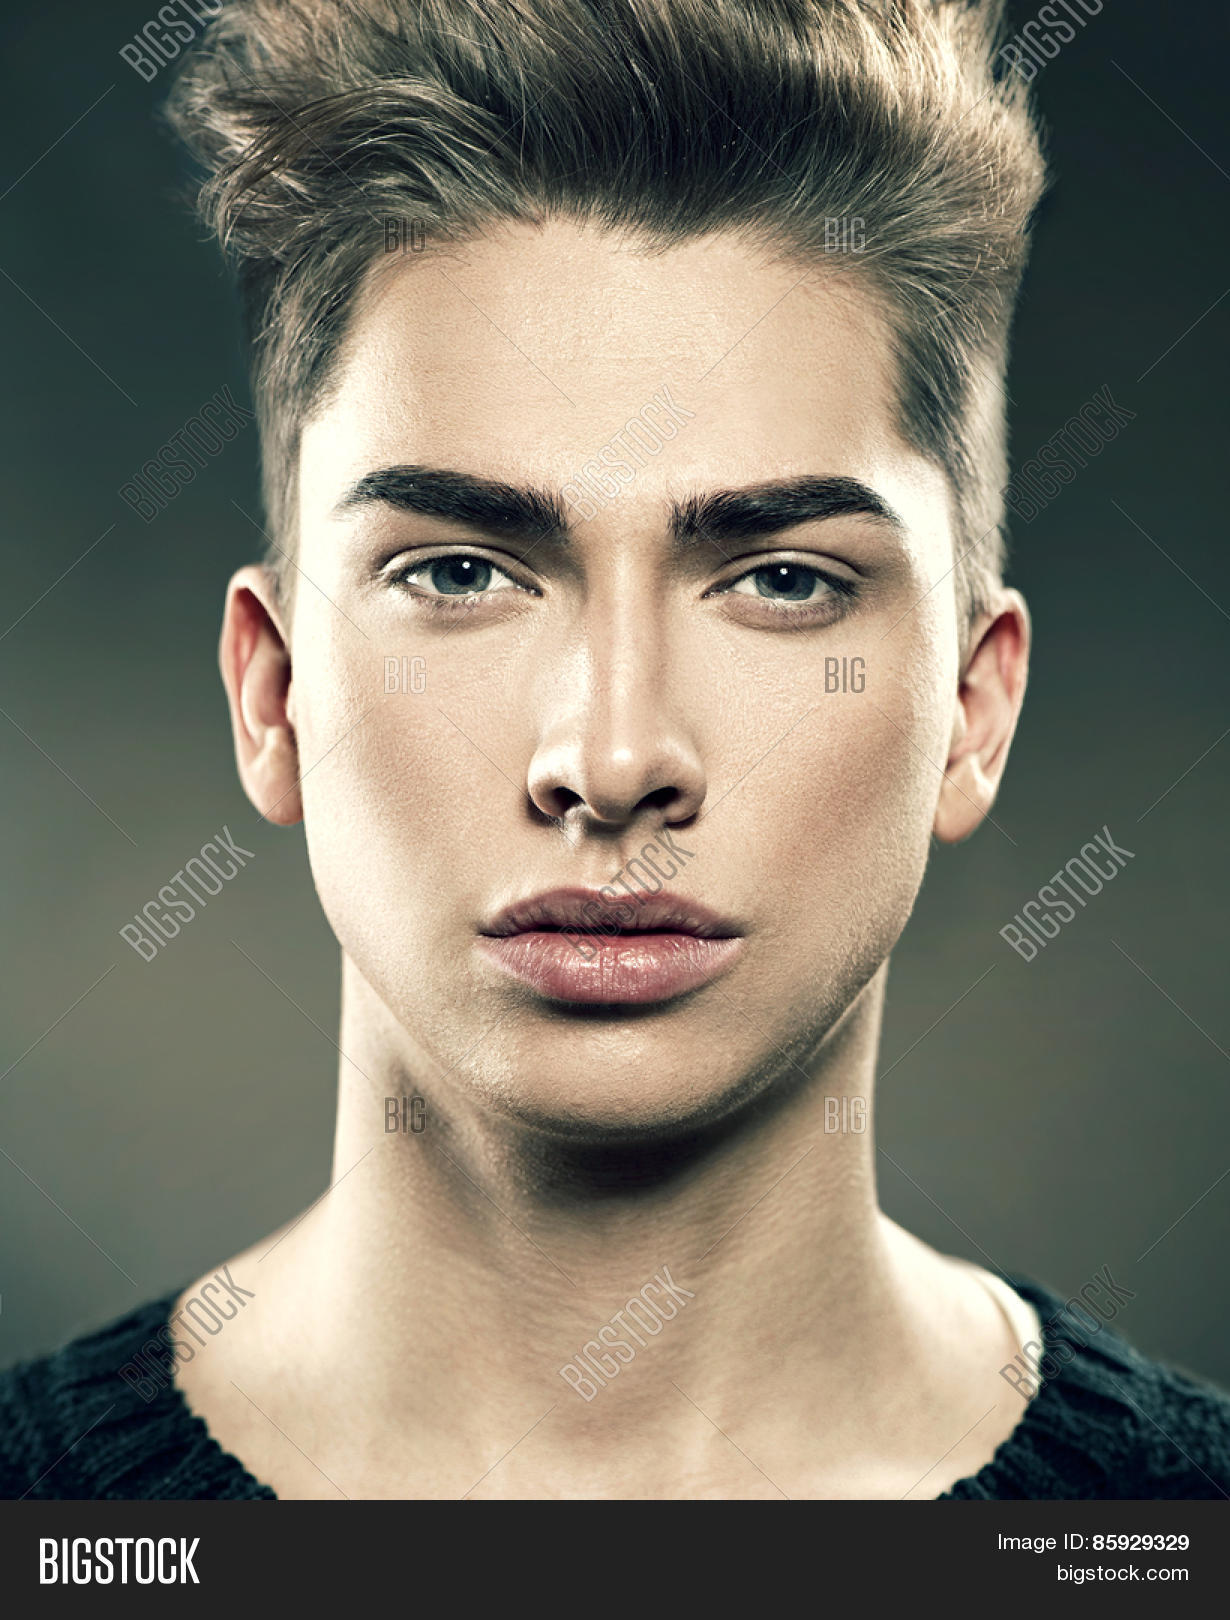 Handsome young fashion model man portrait attractive guy face closeup vogue style image of